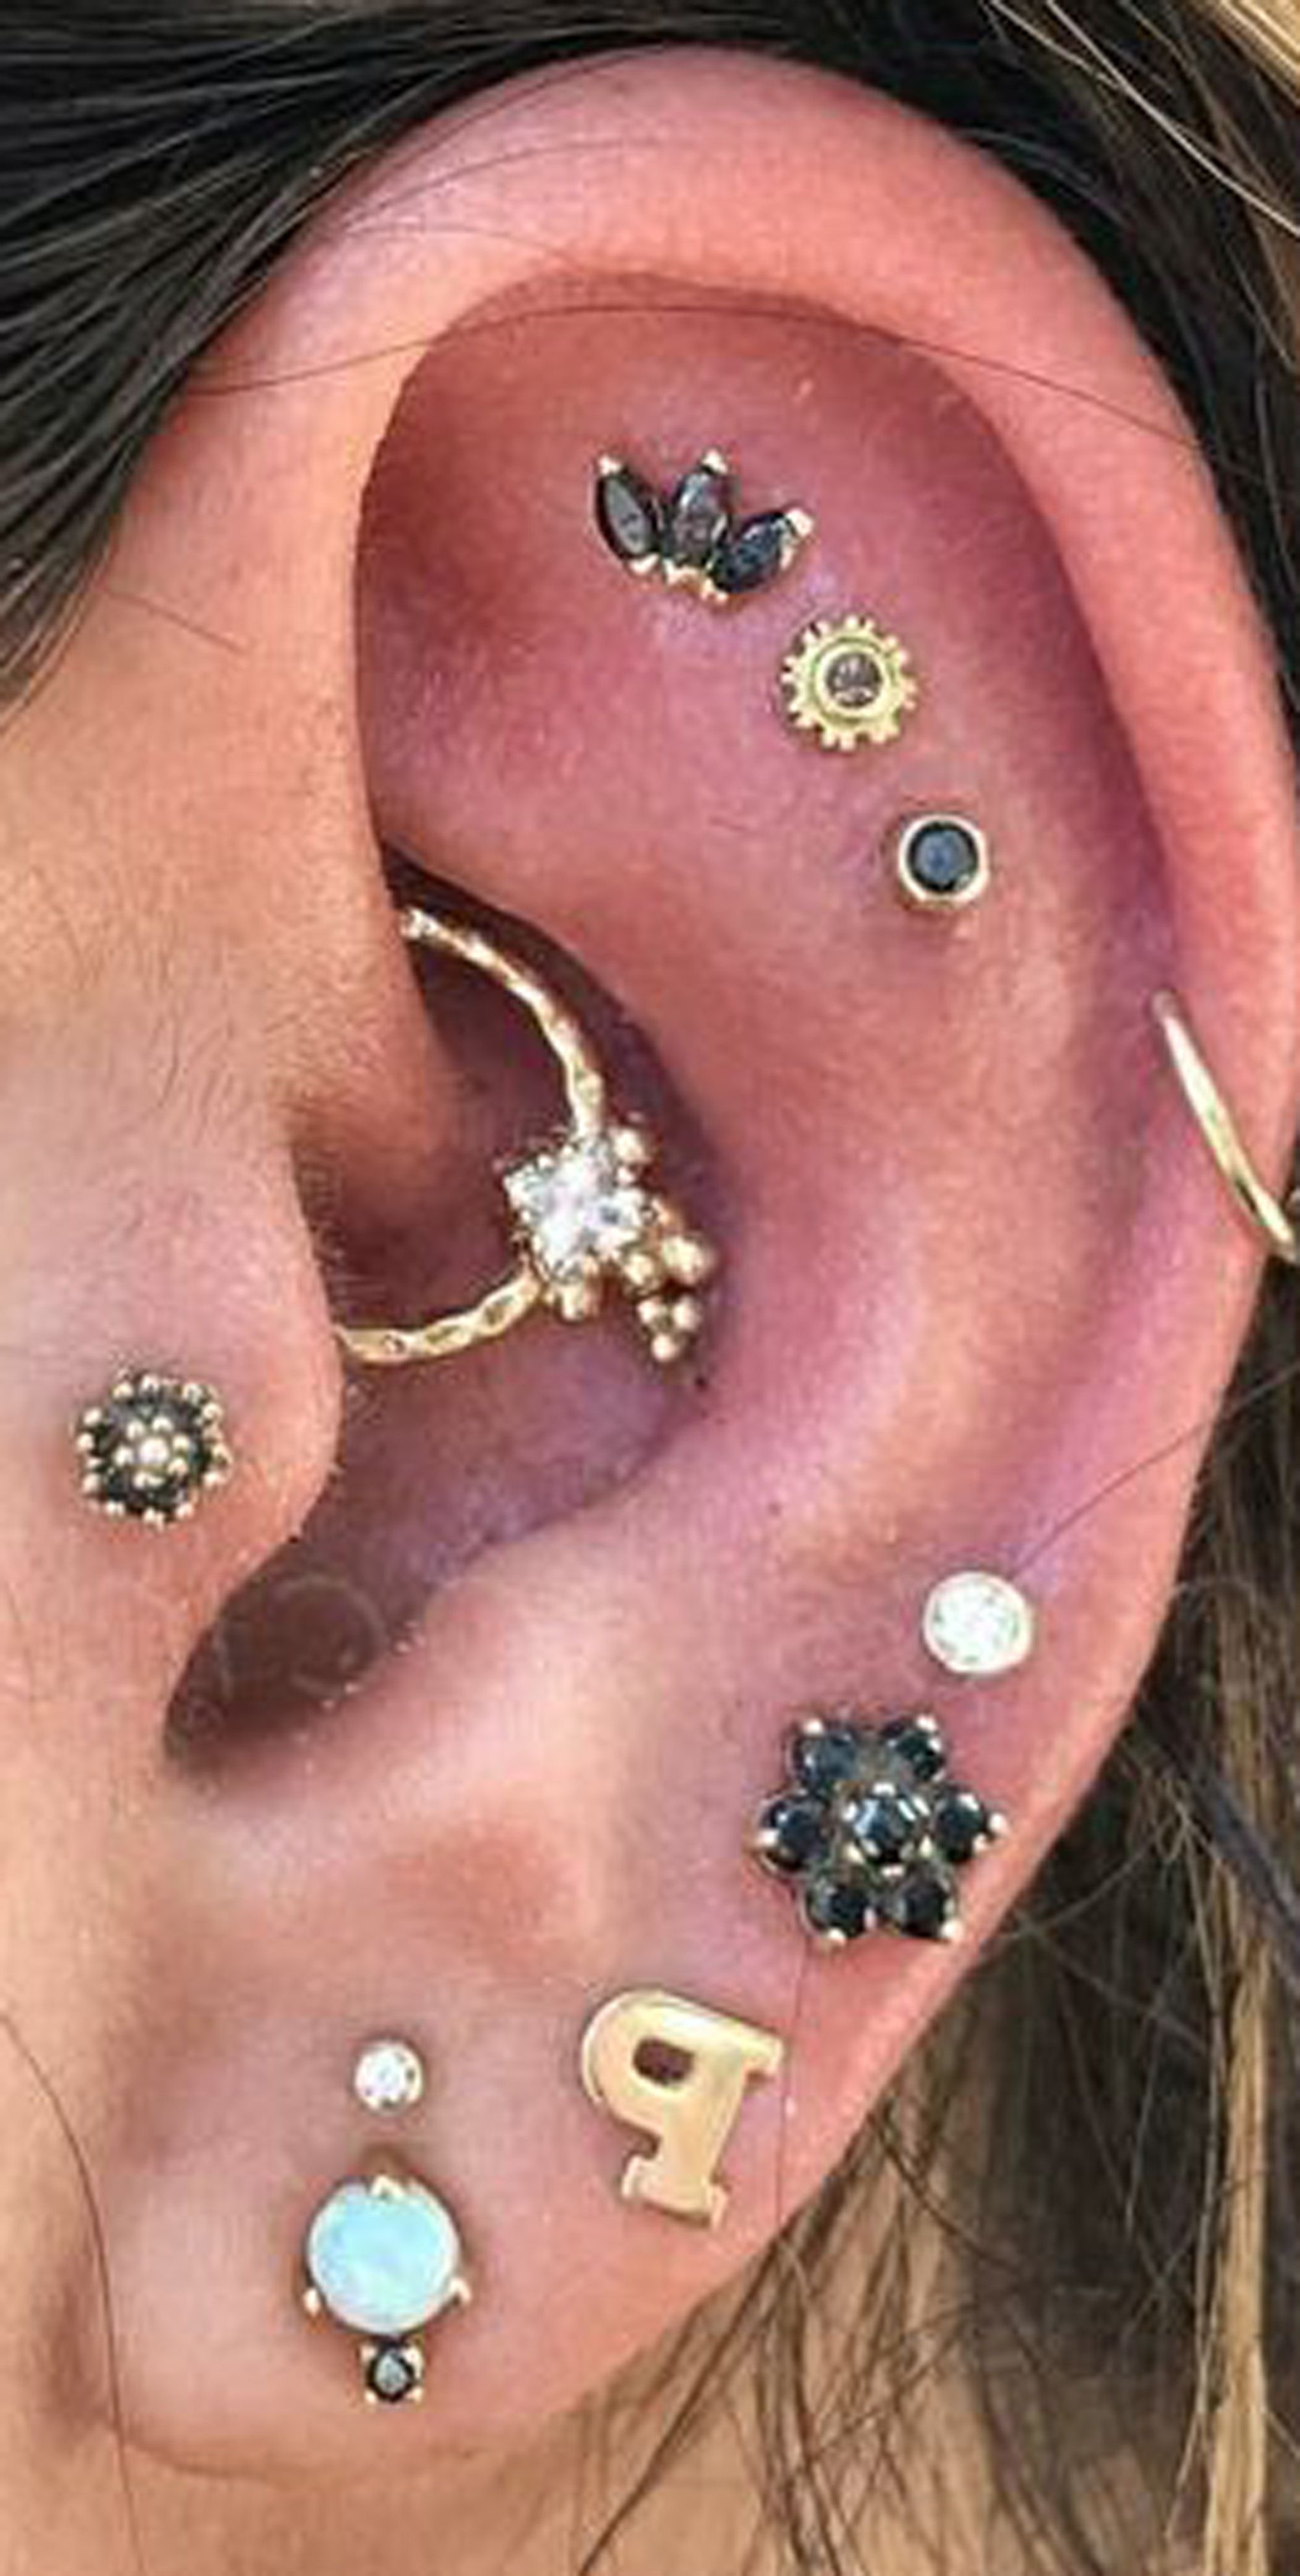 Crust around nose piercing  cute multiple ear piercing ideas for teens cartilage studs daith